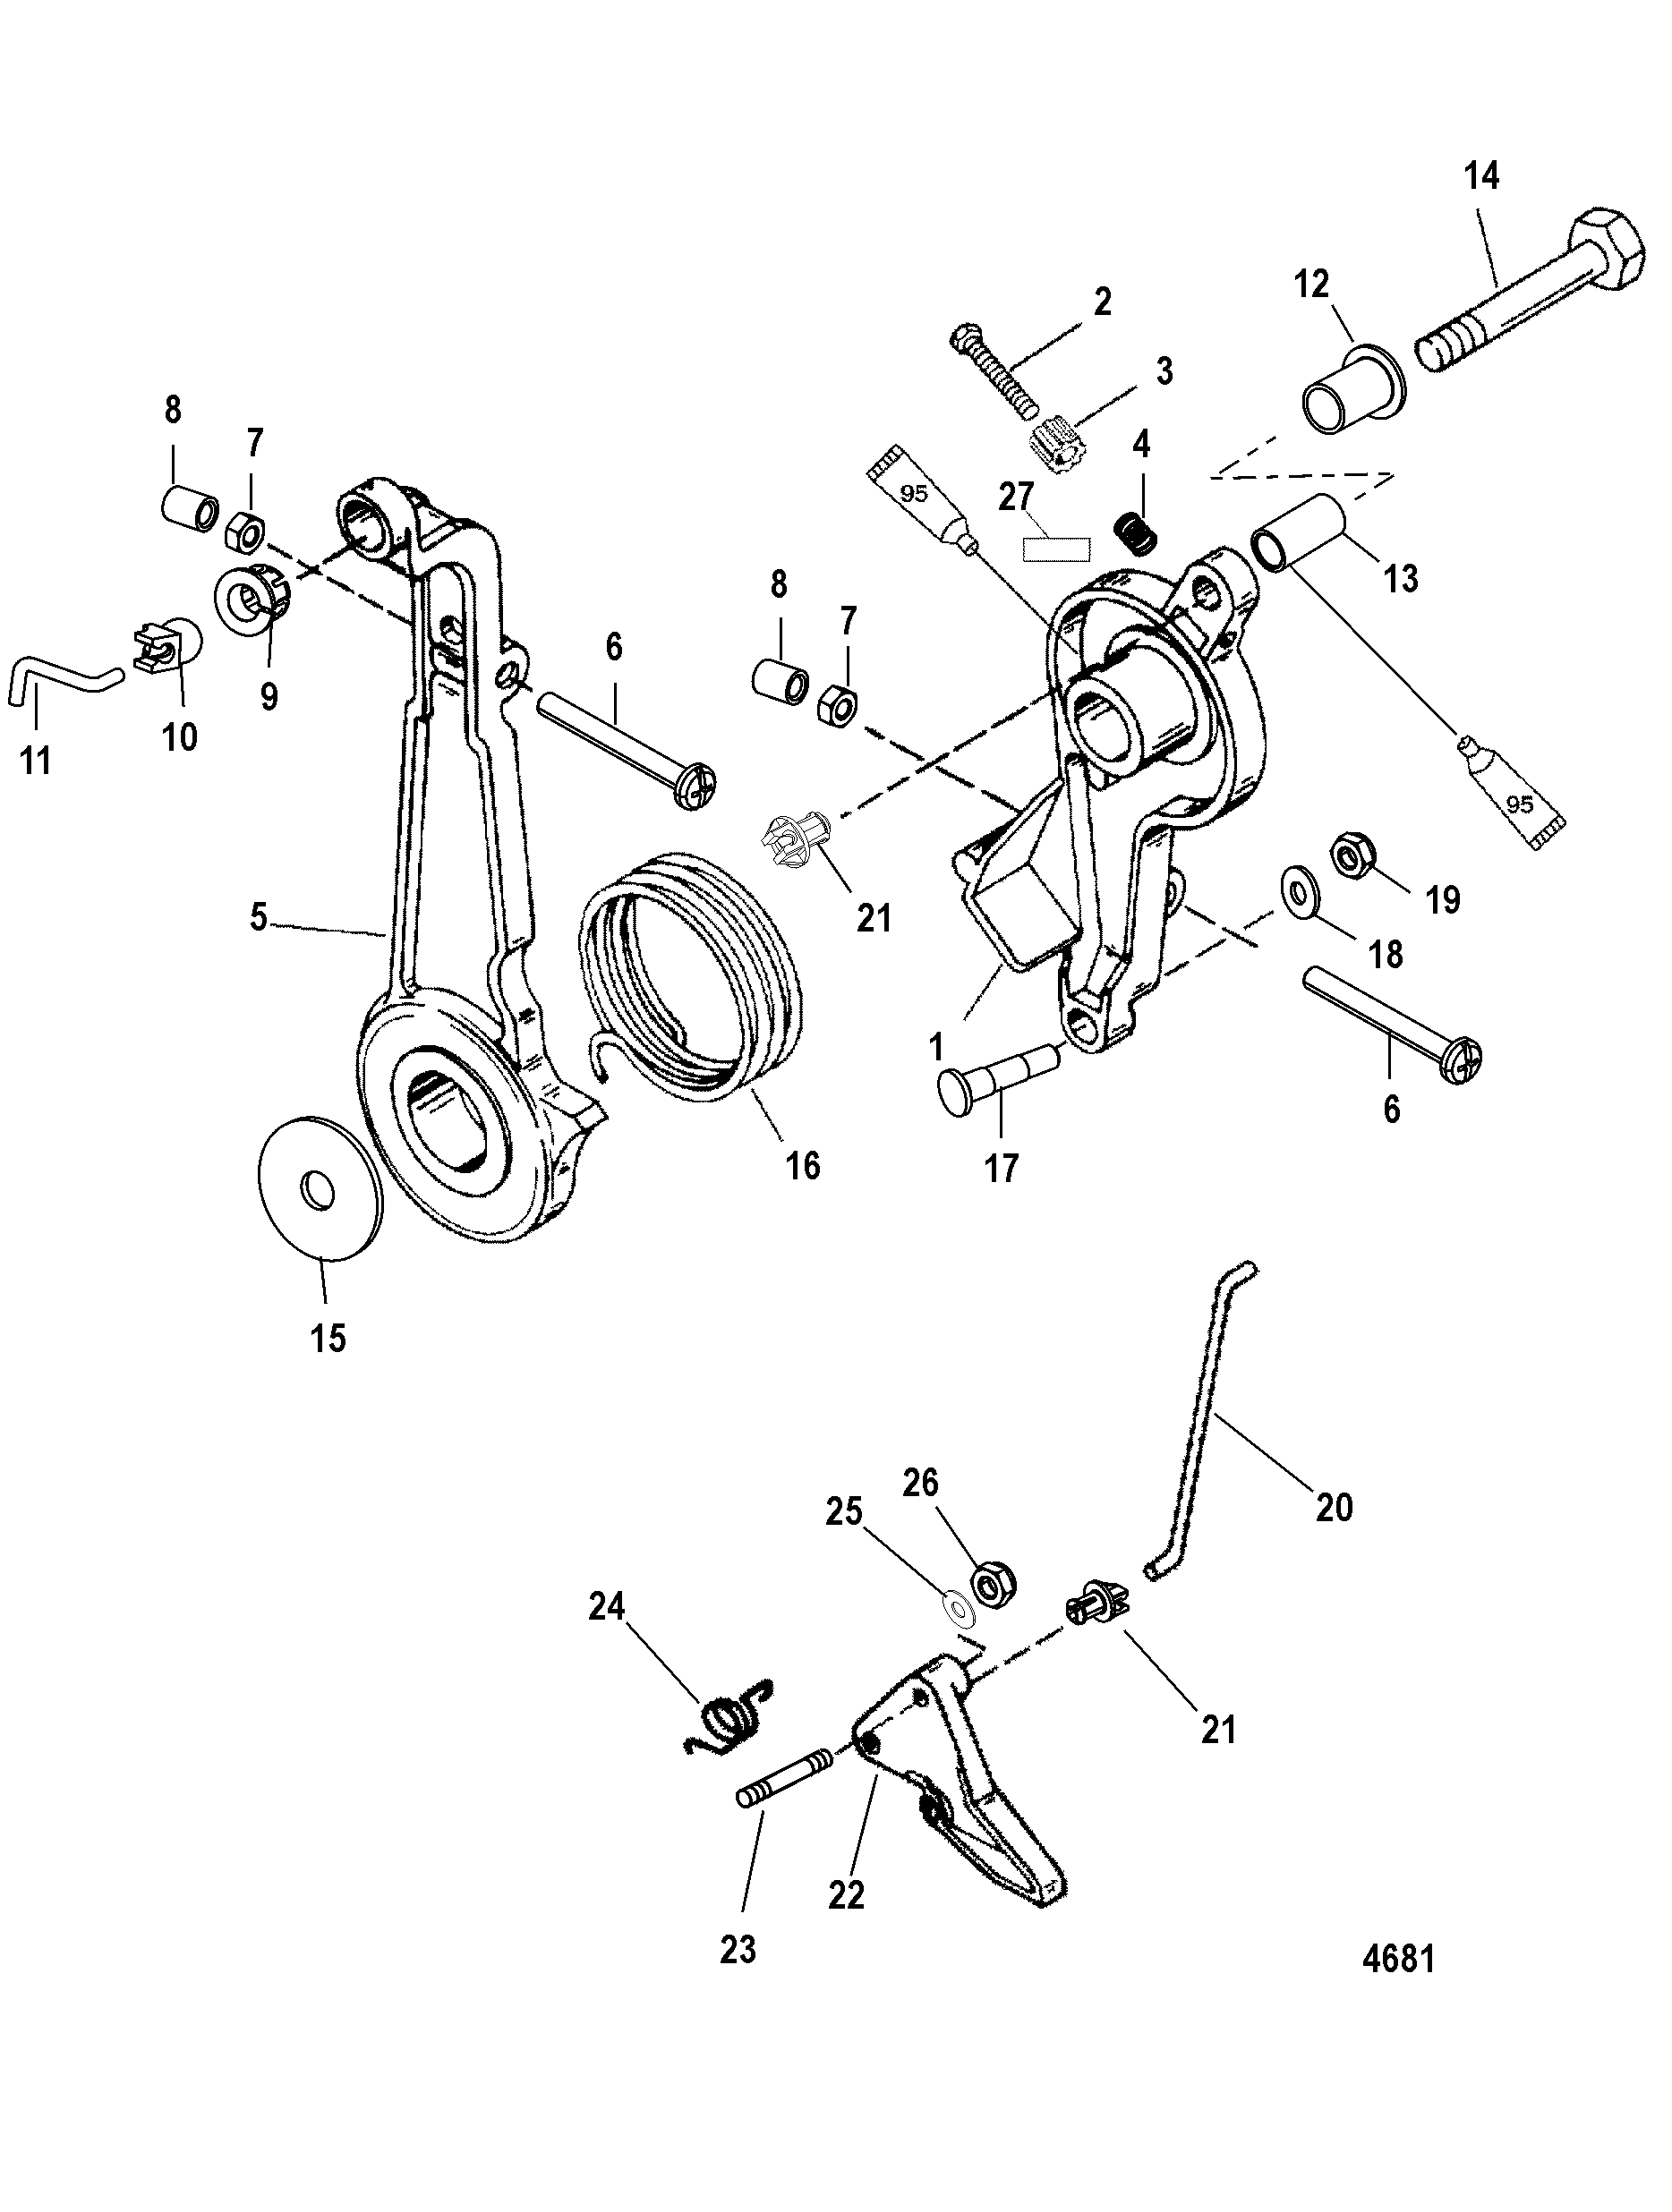 hight resolution of throttle lever and linkage for mariner mercury 75 90 h p 65 jet 3 diagram of 2006 mercury marine mercury outboard 1090412fb electrical